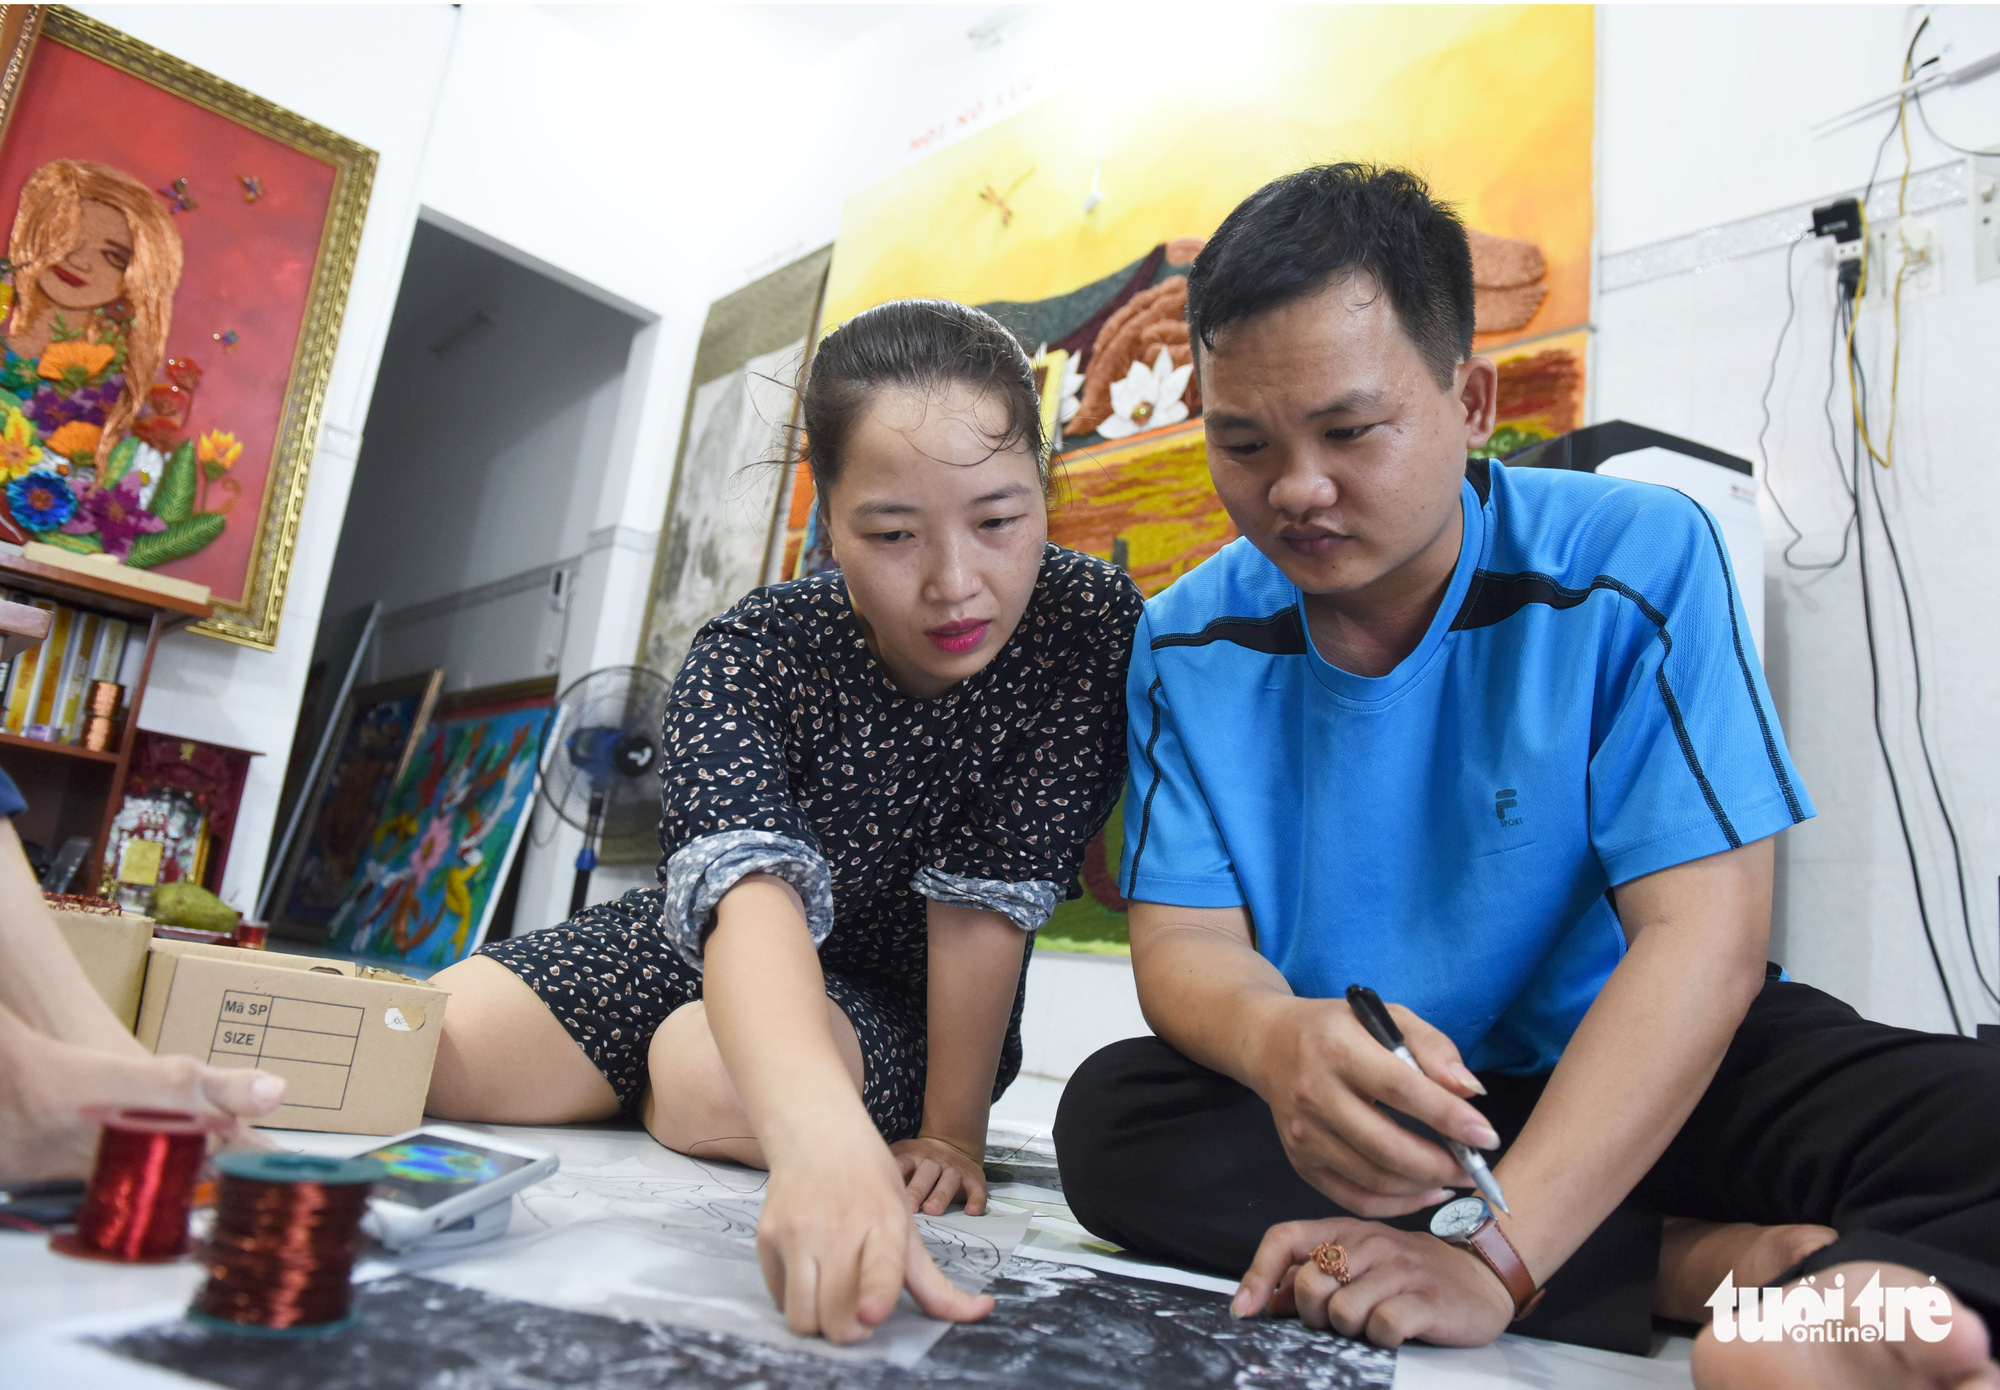 Nguyen Thi Nhat Phuong (left) instructs an apprentice on the creation of a copper wire art piece at her class in Ho Chi Minh City, Vietnam. Photo: Duyen Phan / Tuoi Tre